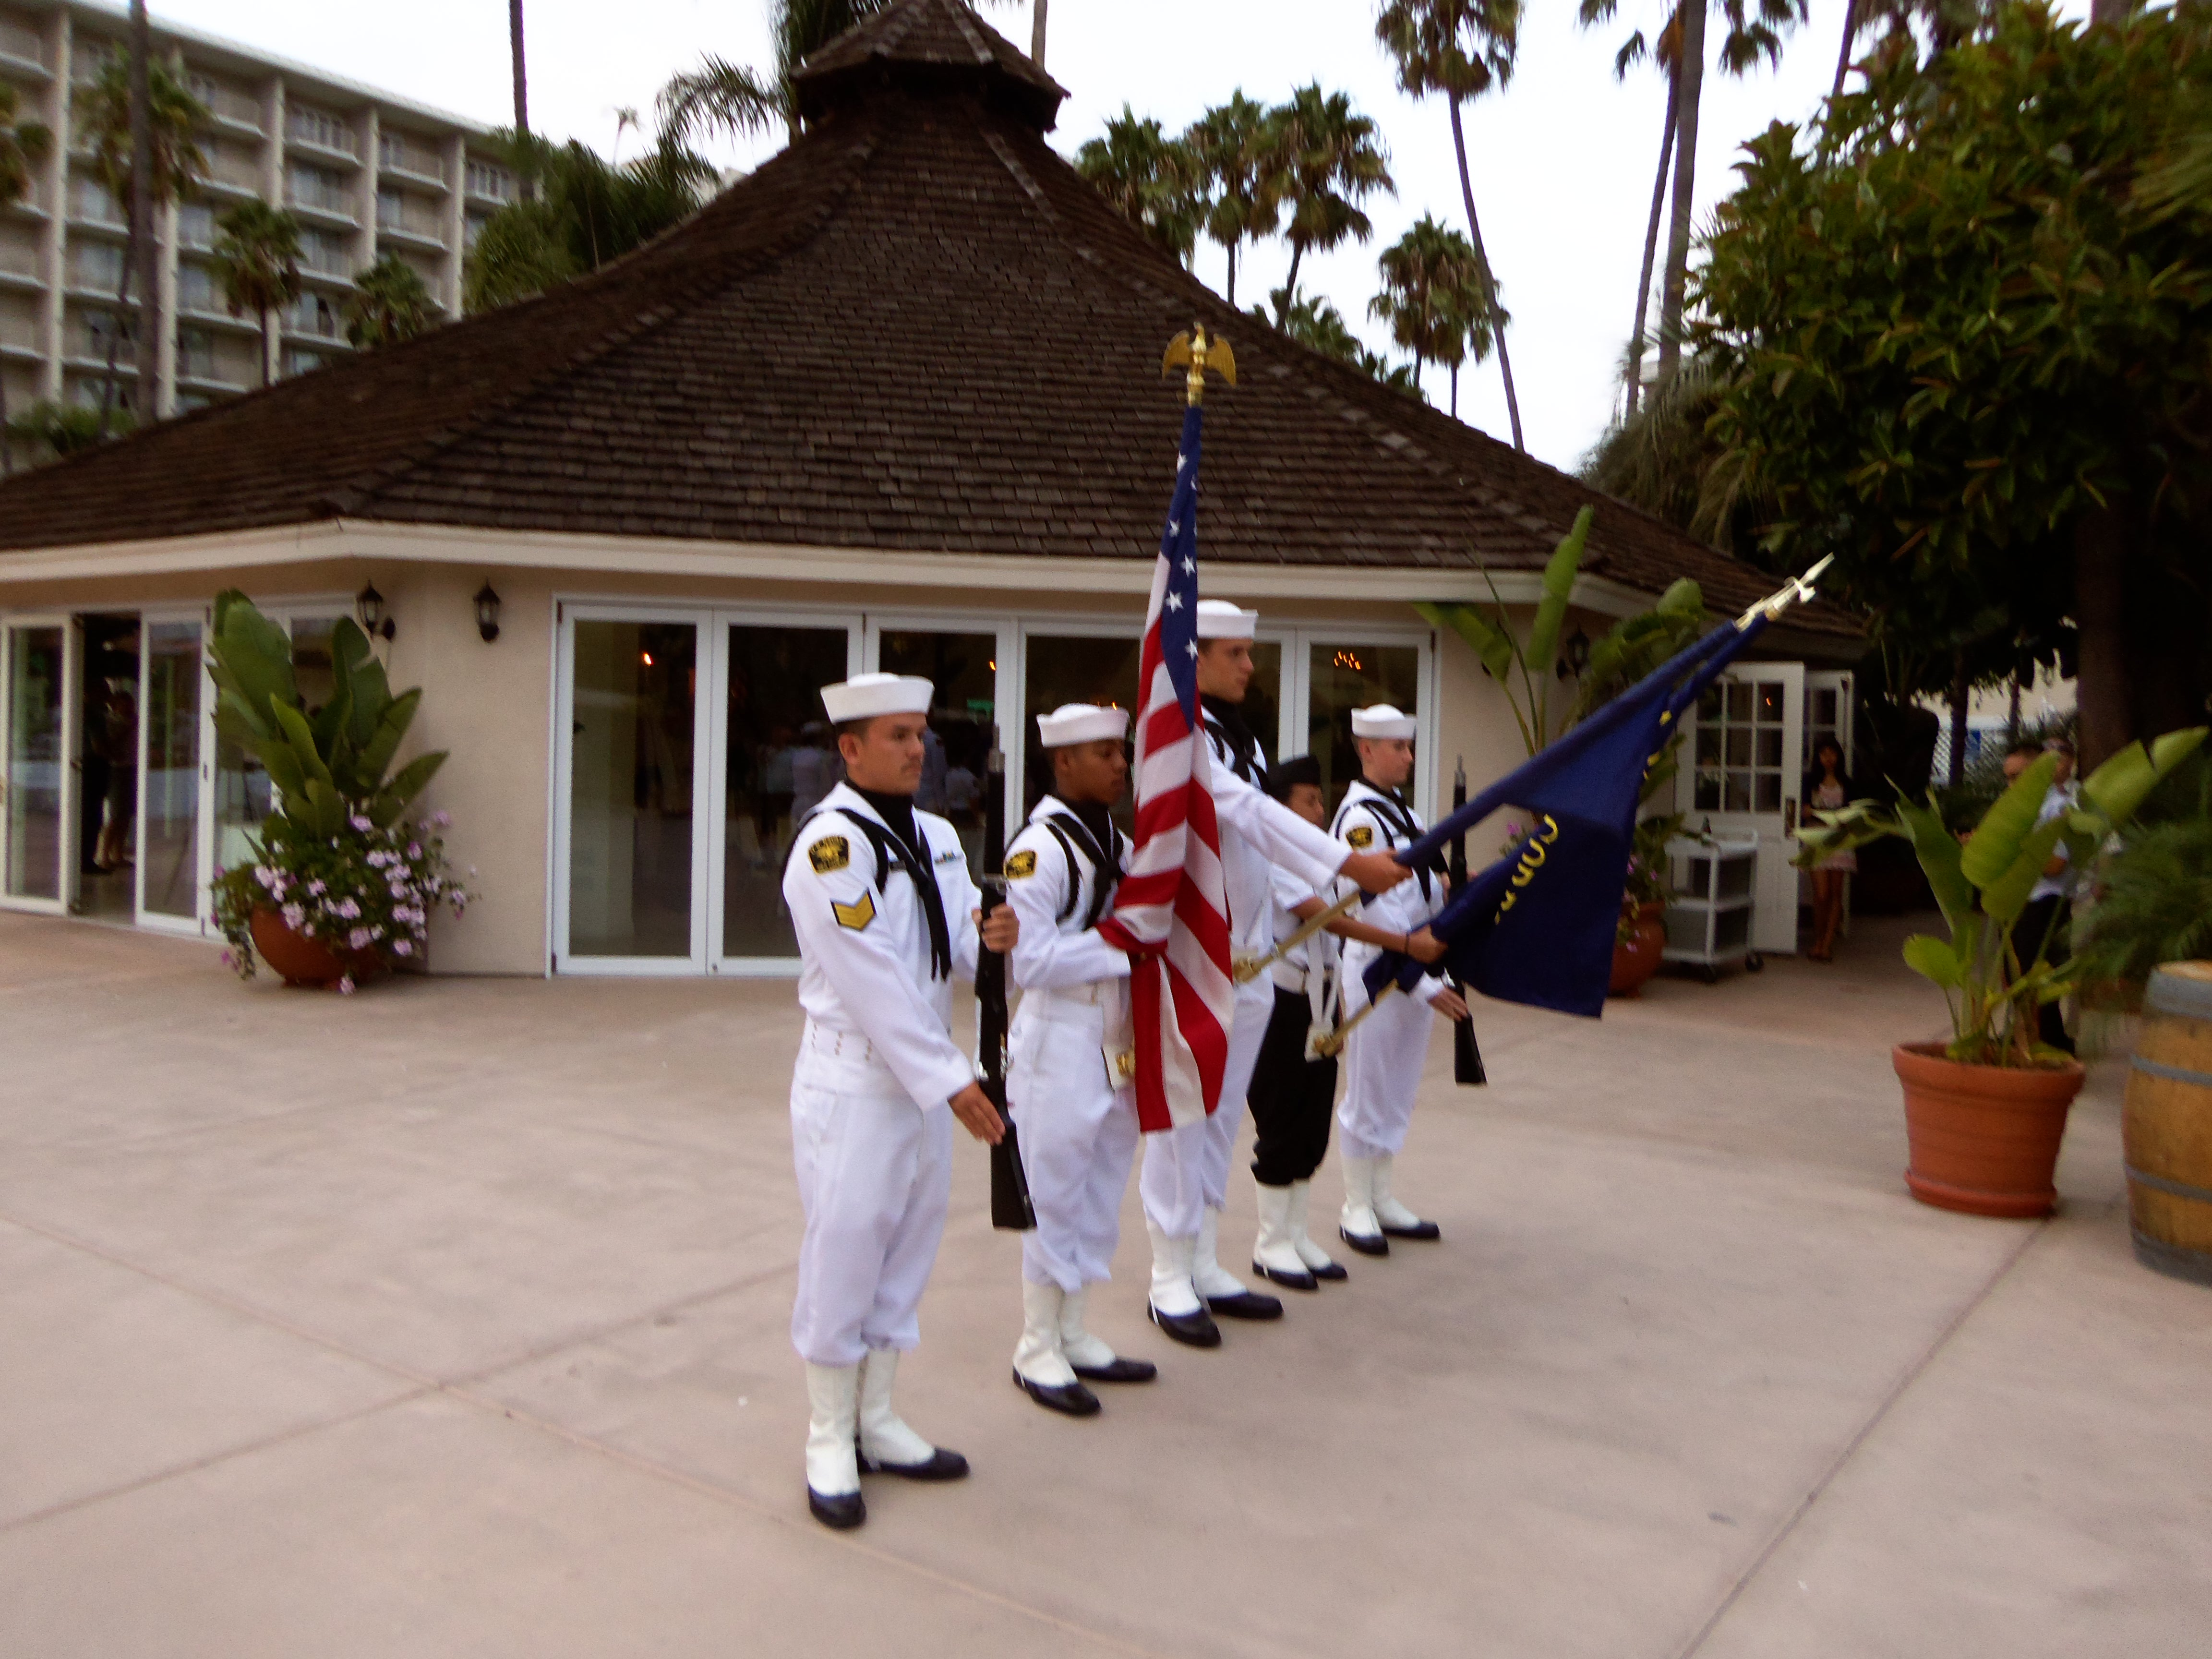 2013-09-20 BANQUET-HONOR GUARD(GARIDEL149